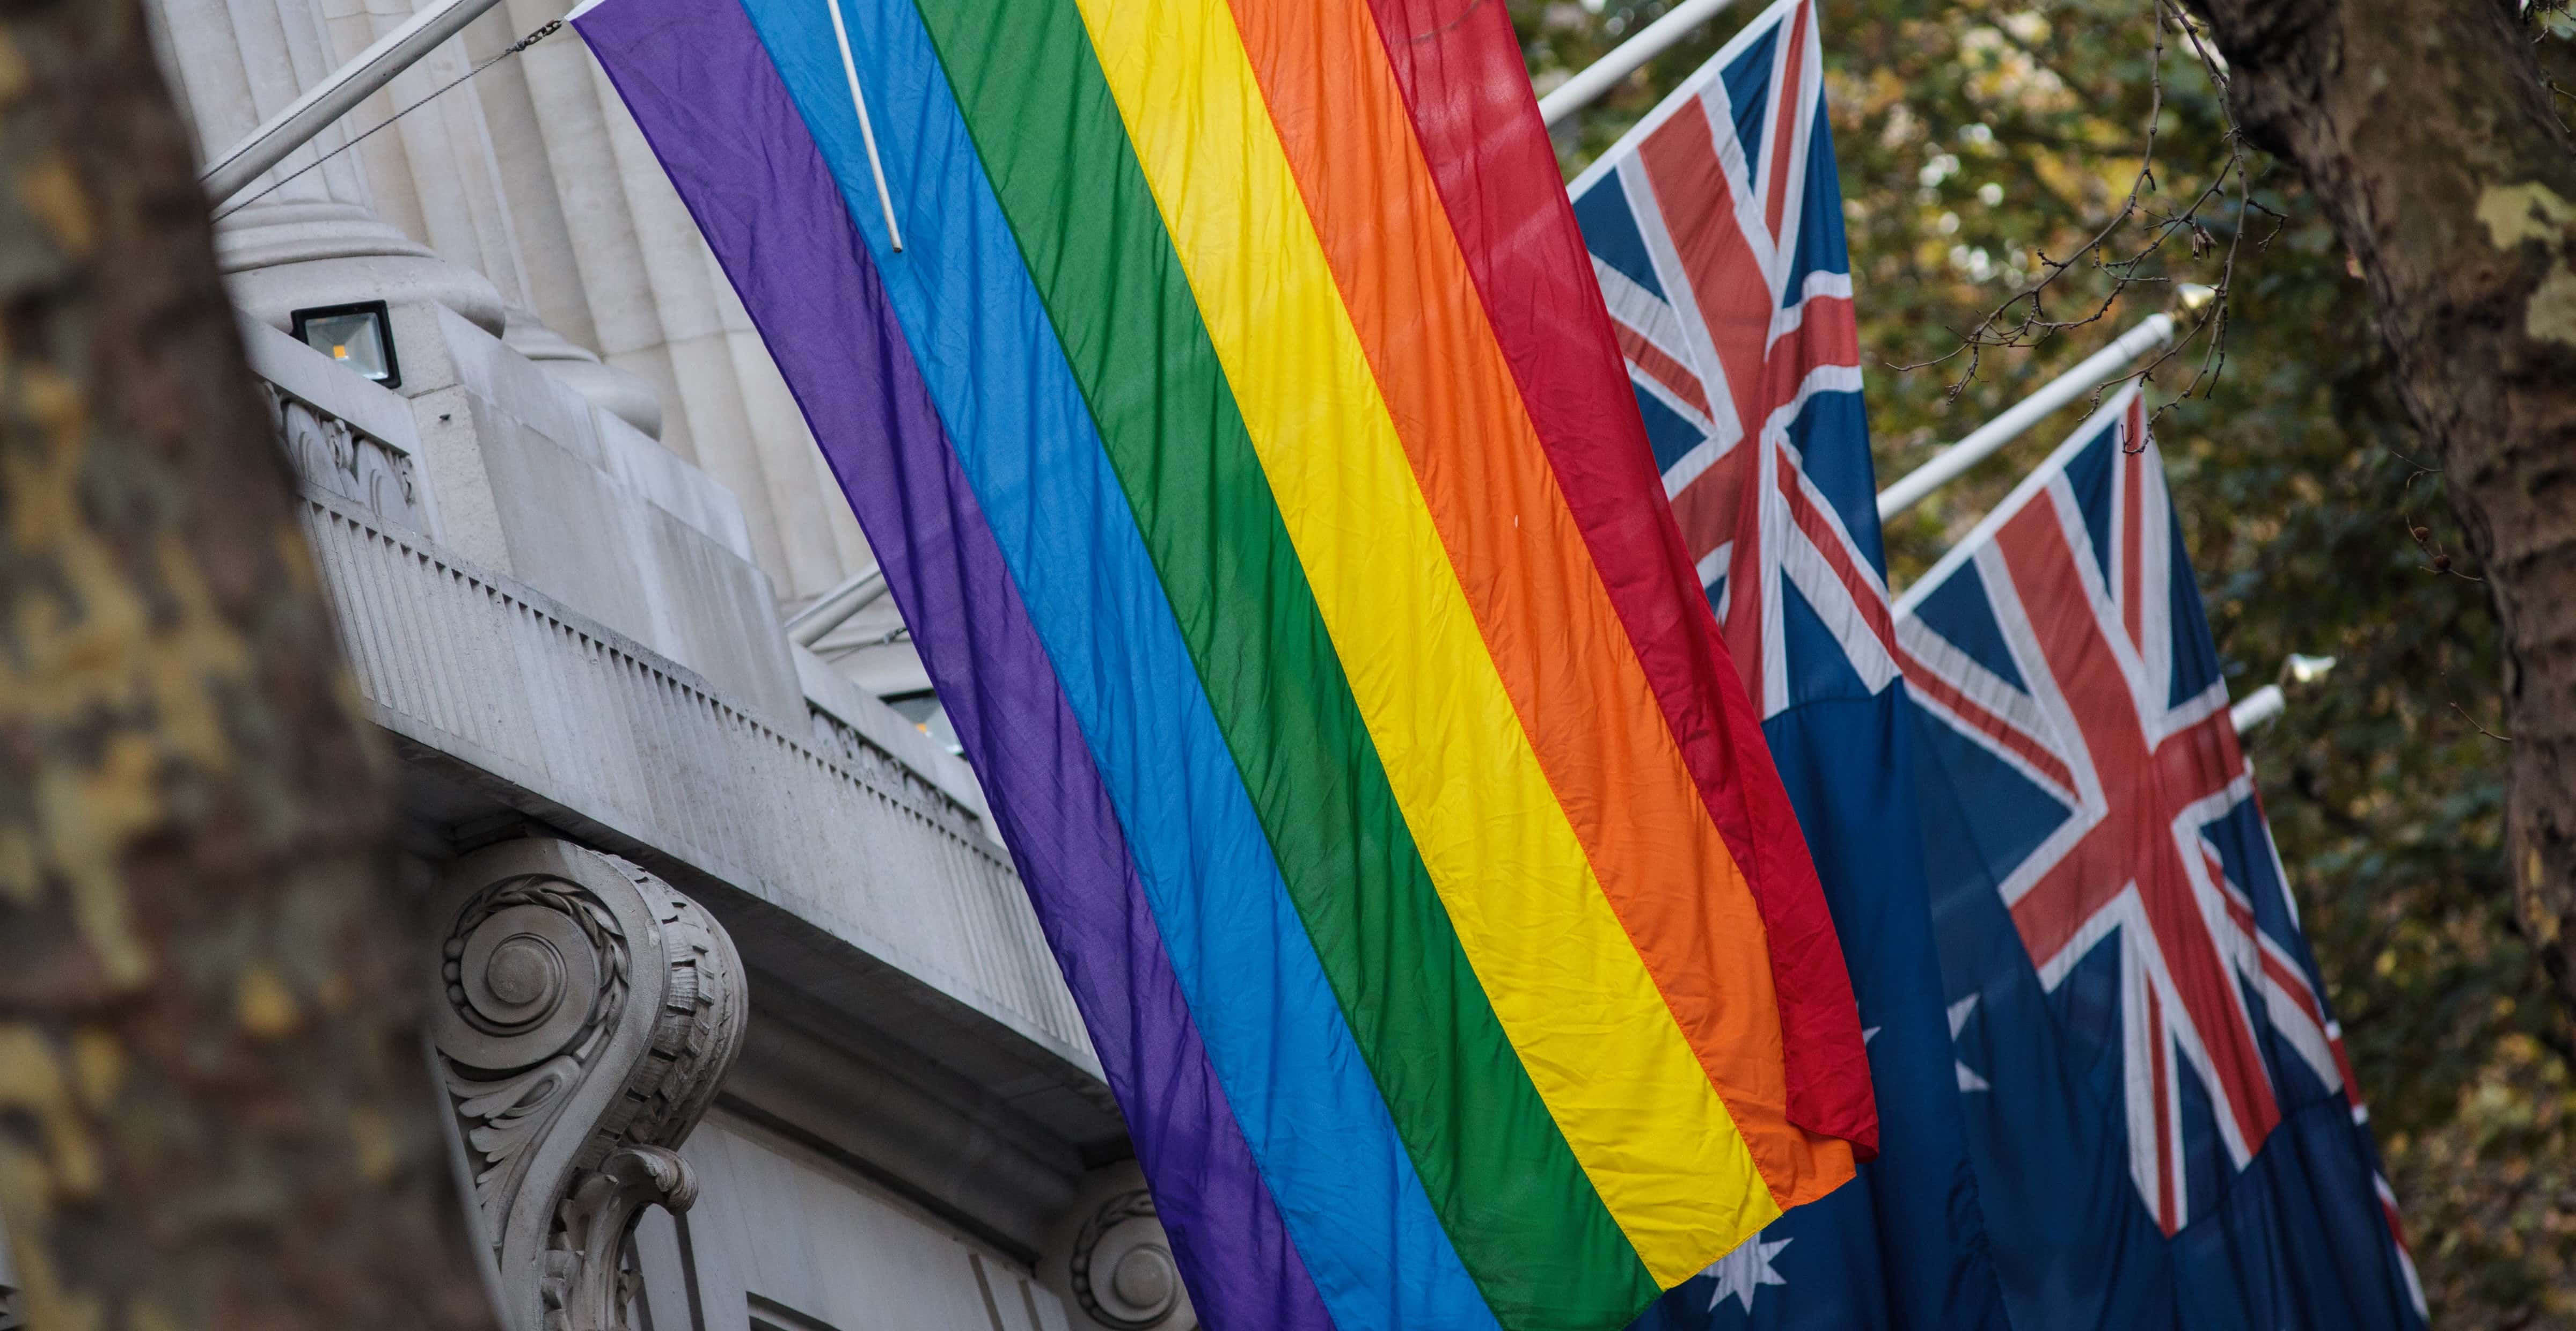 The rainbow flag hanging outside Australia House in London, November 2017 (Photo: Jack Taylor/Getty Images)